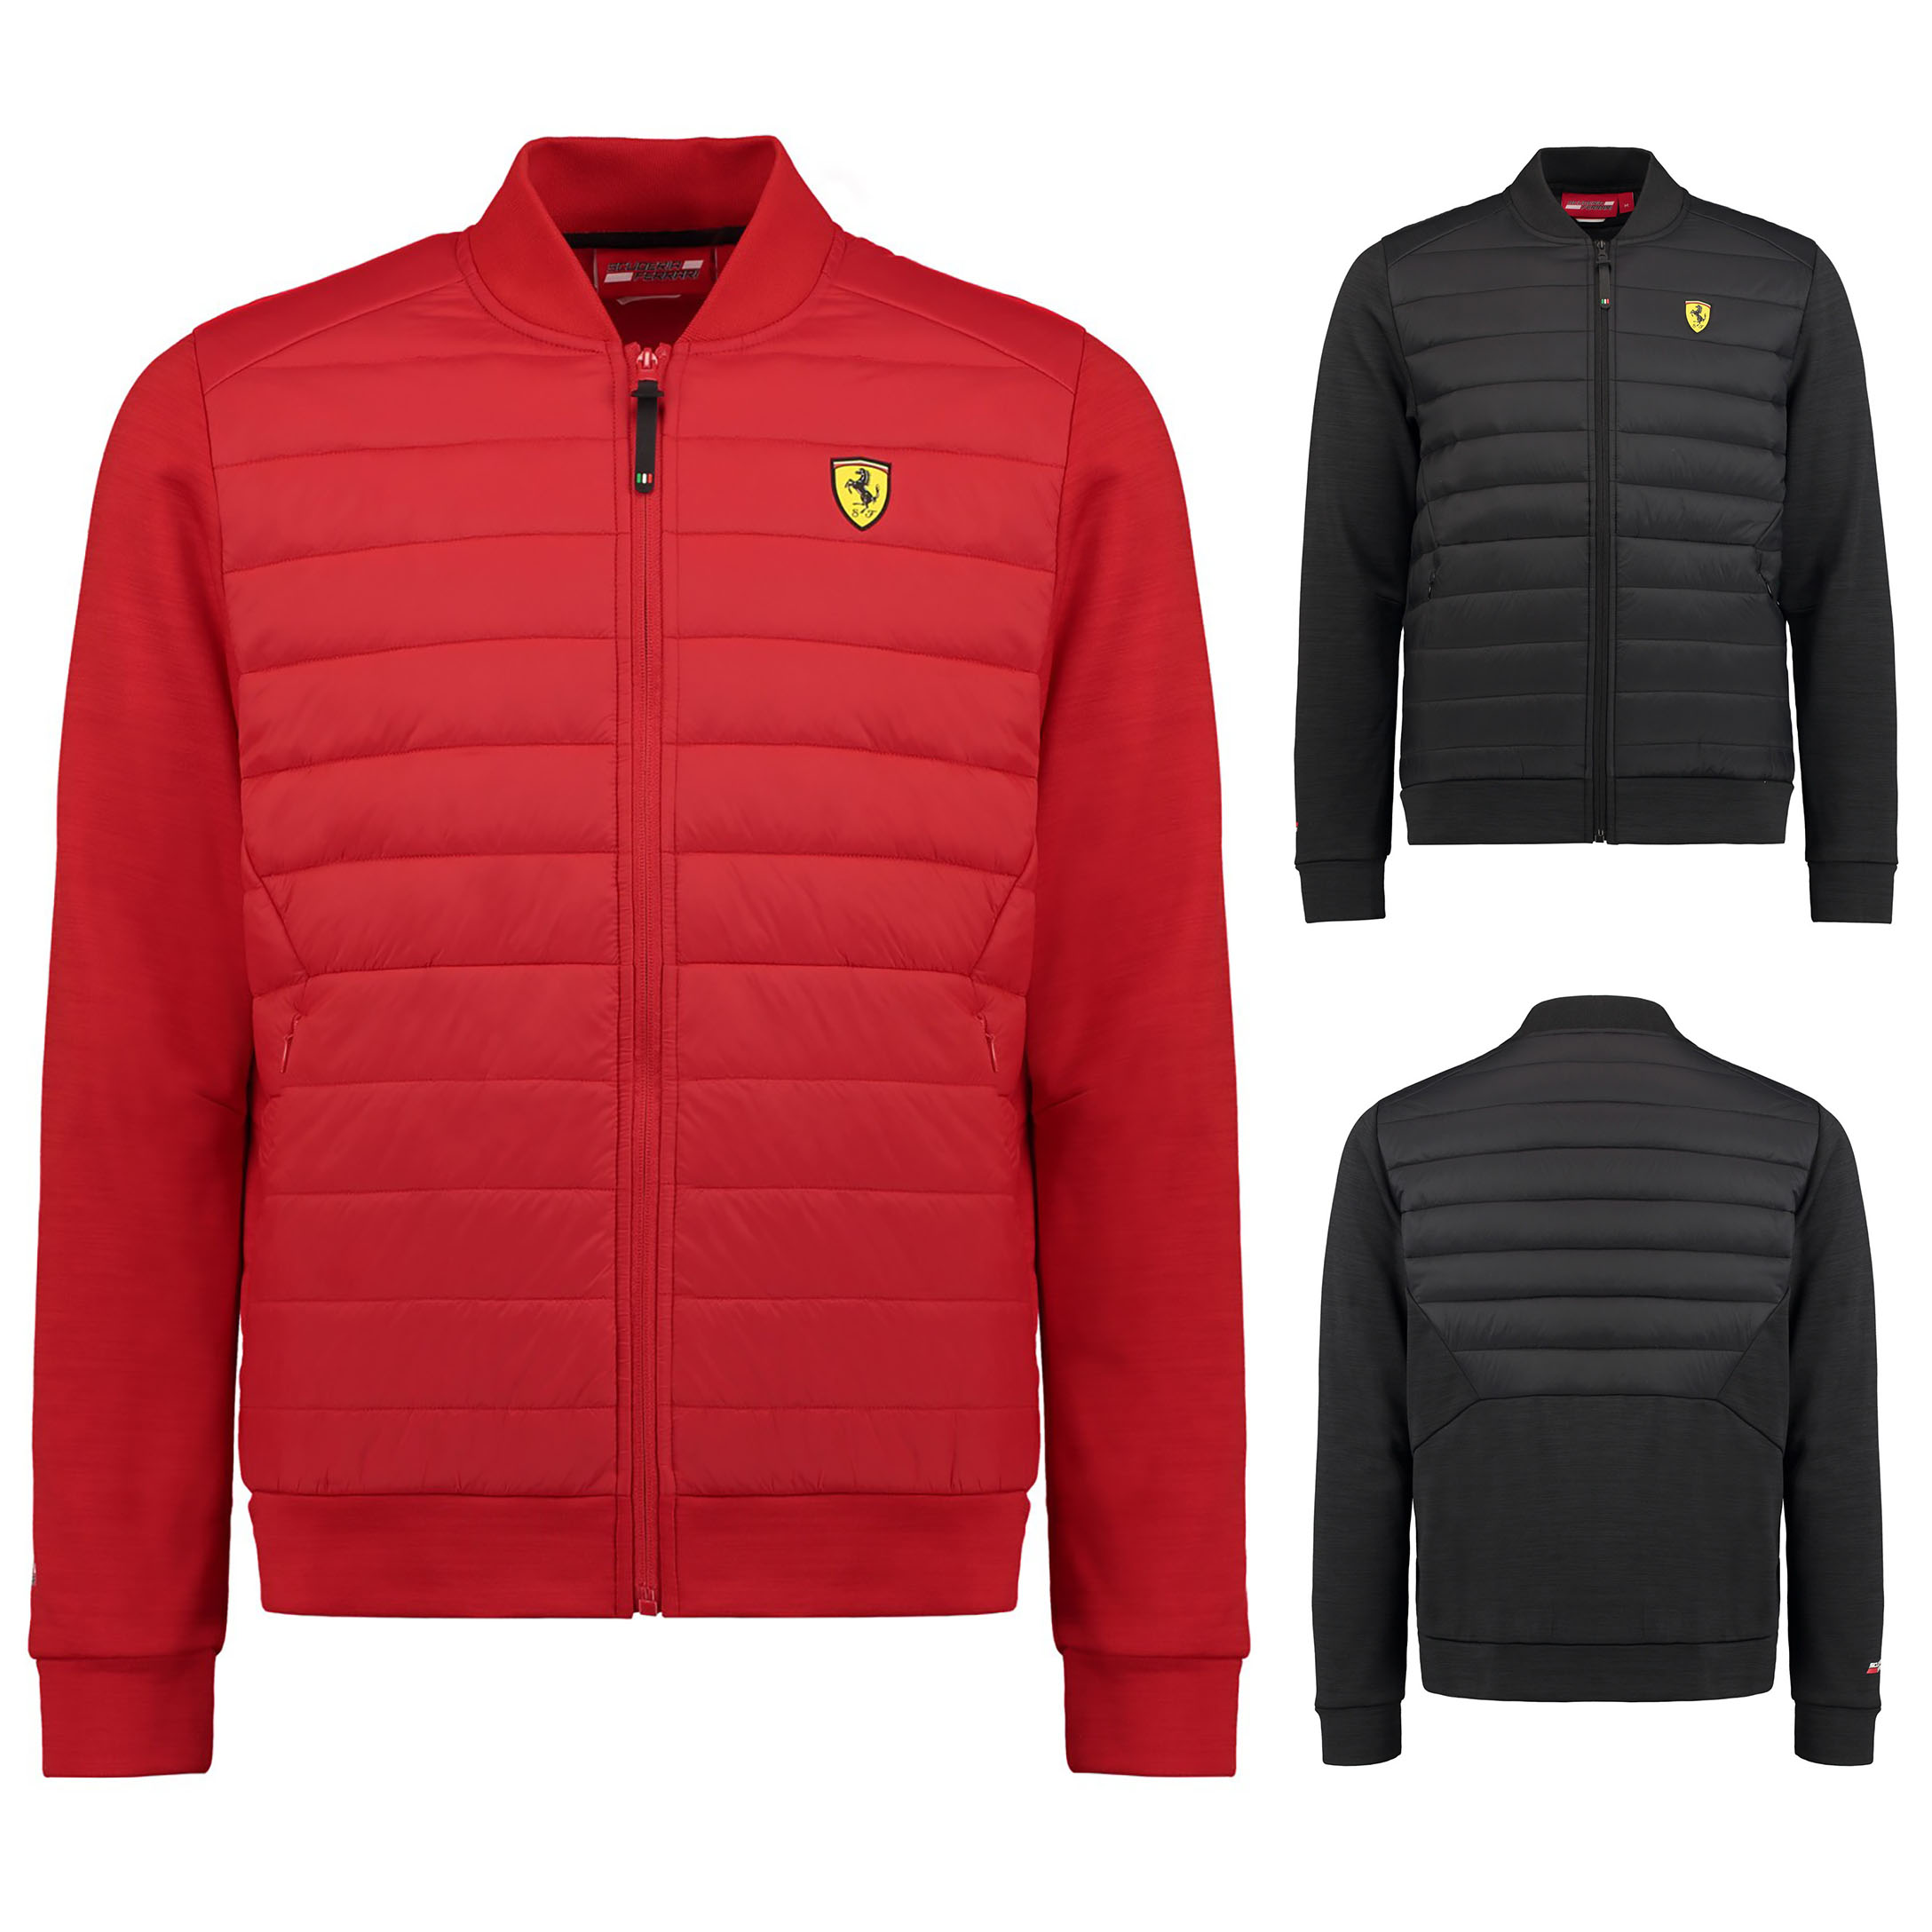 7904ddd4bd 2018 Scuderia Ferrari Mens Bomber Jacket Coat Sizes XS-XXL Official  Merchandise